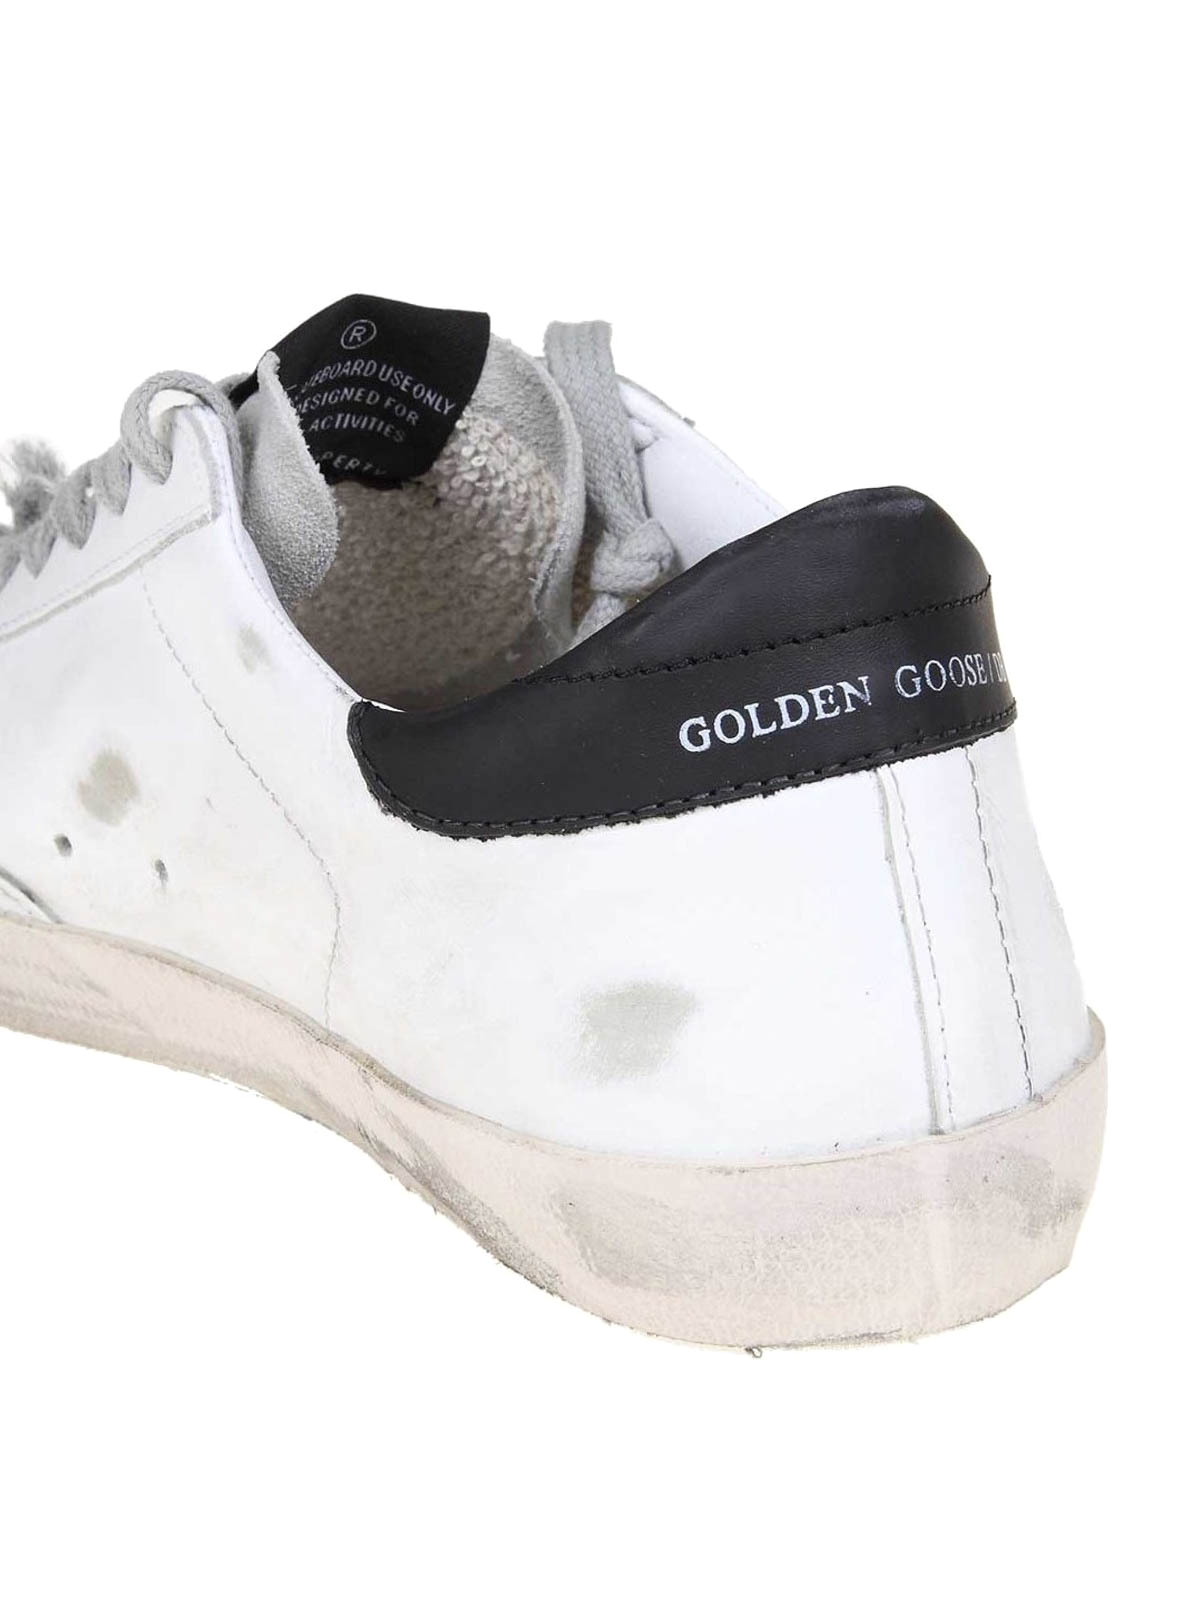 3dbe96938f4b superstar-vintage-effect-sneakers-shop-online -golden-goose-00000149169f00s004.jpg